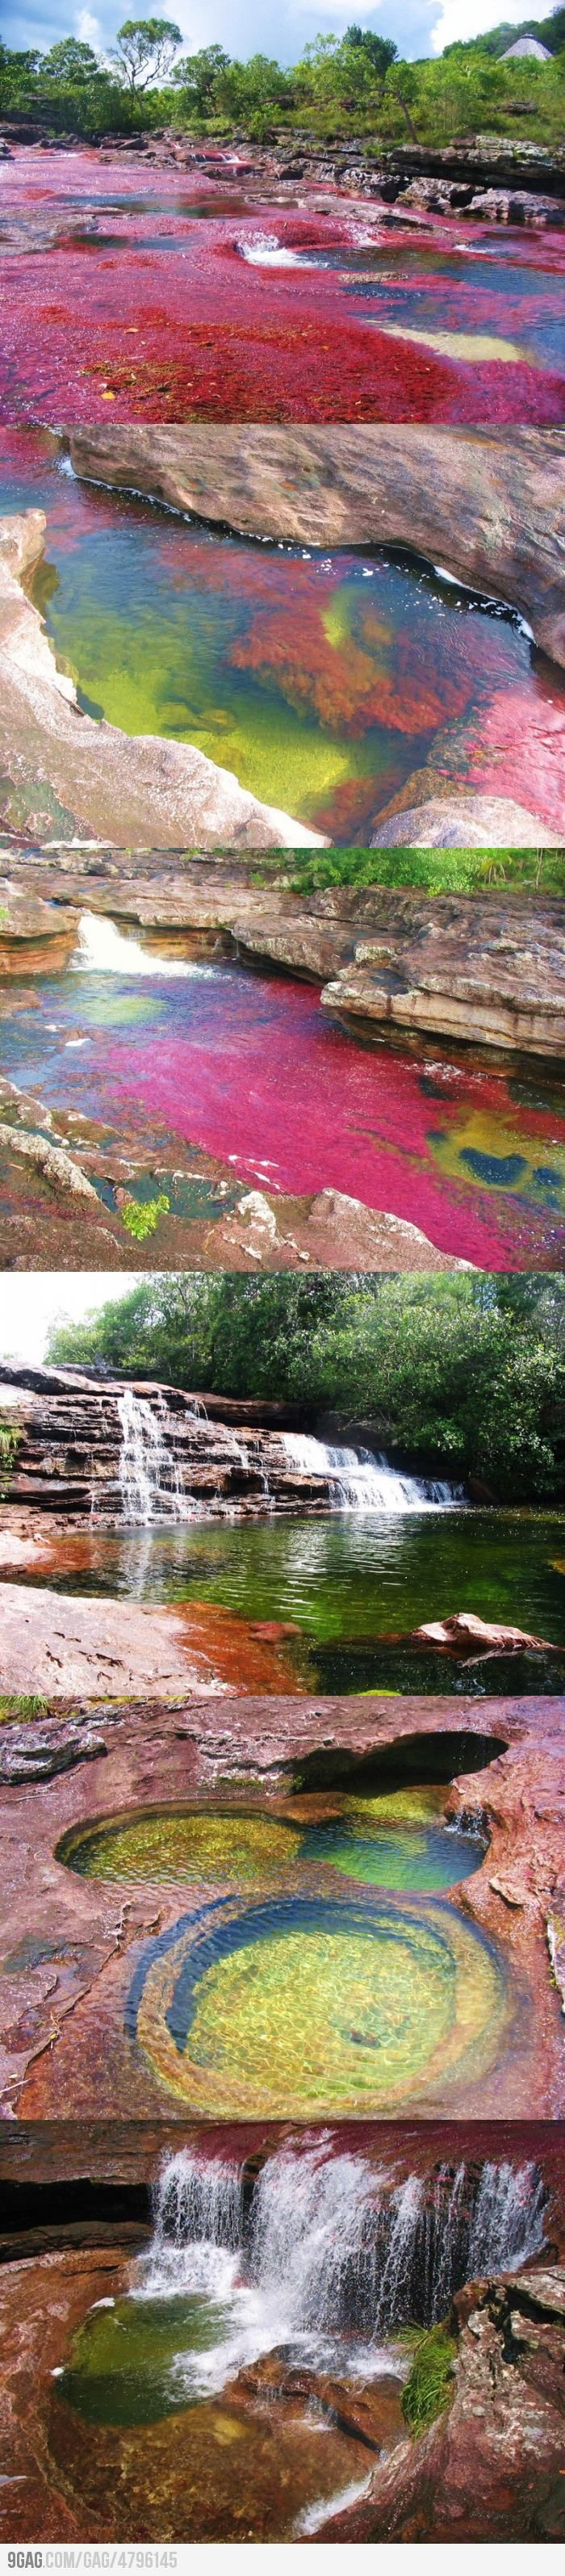 "River of Five Colors/ Caño Cristales in Columbia.Caño Cristales is a Colombian river located in the Serrania de la Macarena, province of Meta. aka ""The Liquid Rainbow"" or even ""The Most Beautiful River in the World"""